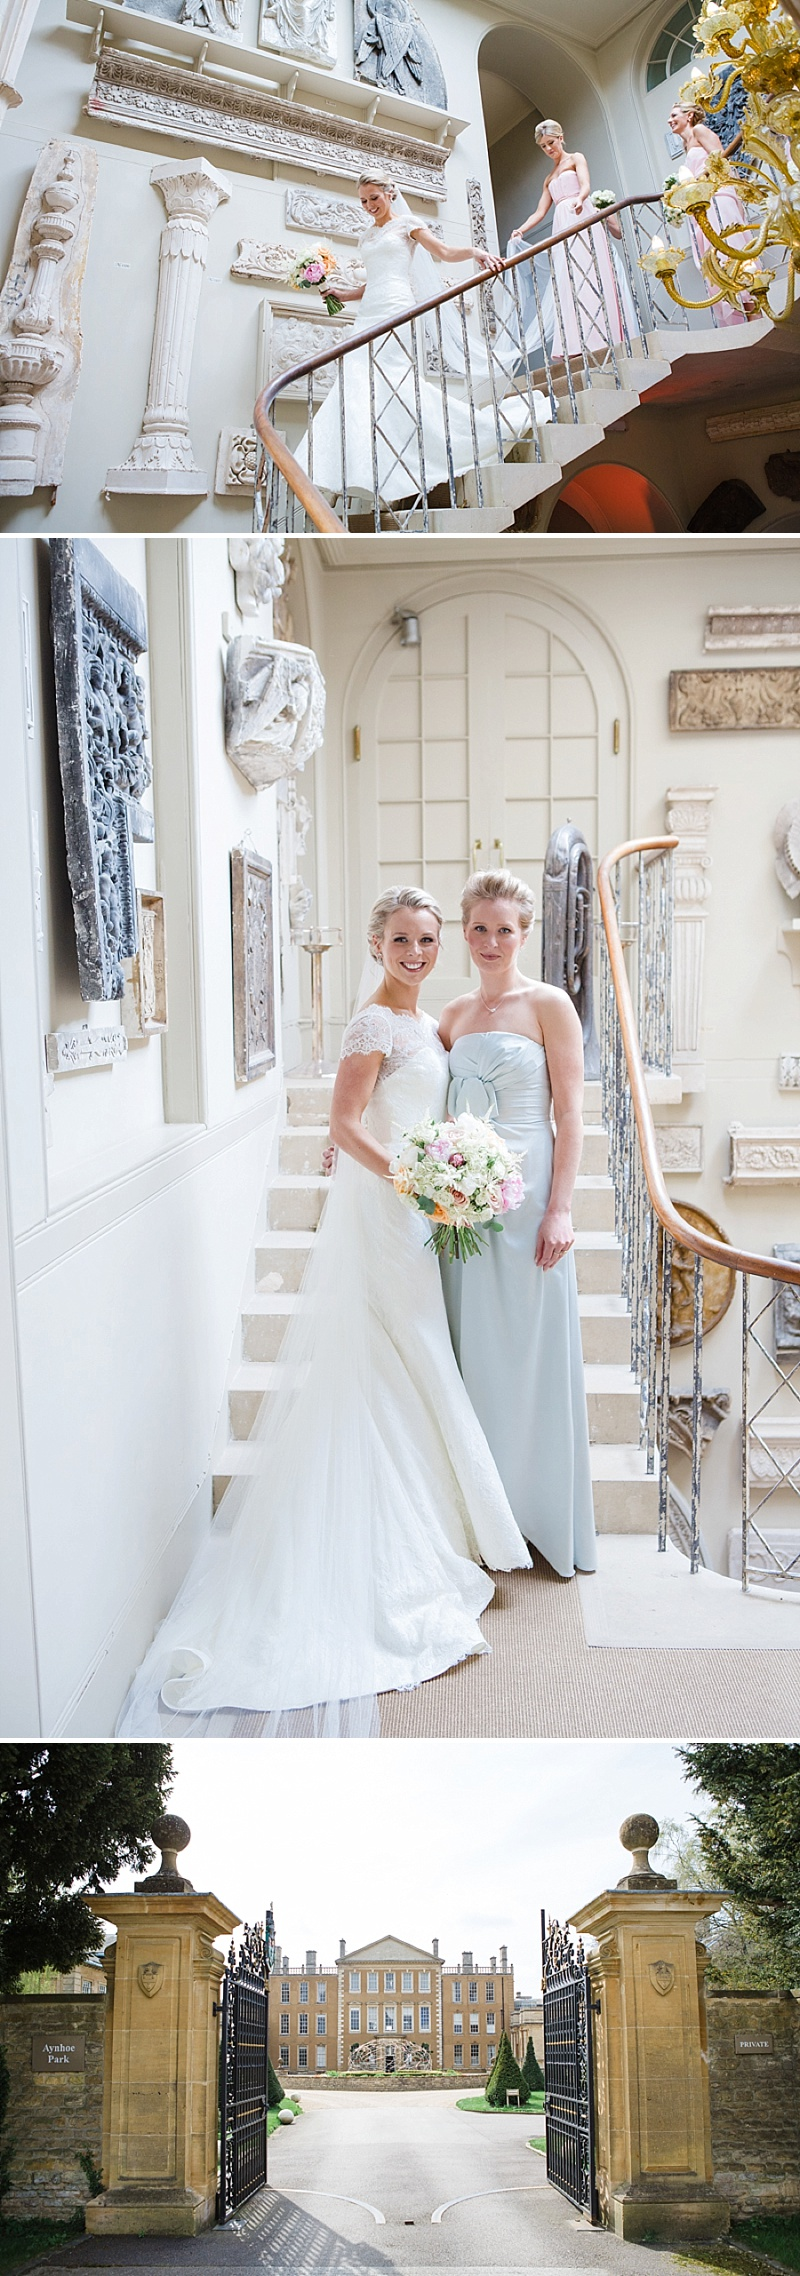 Elegant Wedding At Aynhoe Park With A Pastel Colour Scheme And Bride In A Lace Cap Sleeved Augusta Jones Dress For The Ceremony And A Sequinned Jenny Packham Gown For The Reception And Bridesmaids In Pink Dresses From Ted Baker 3